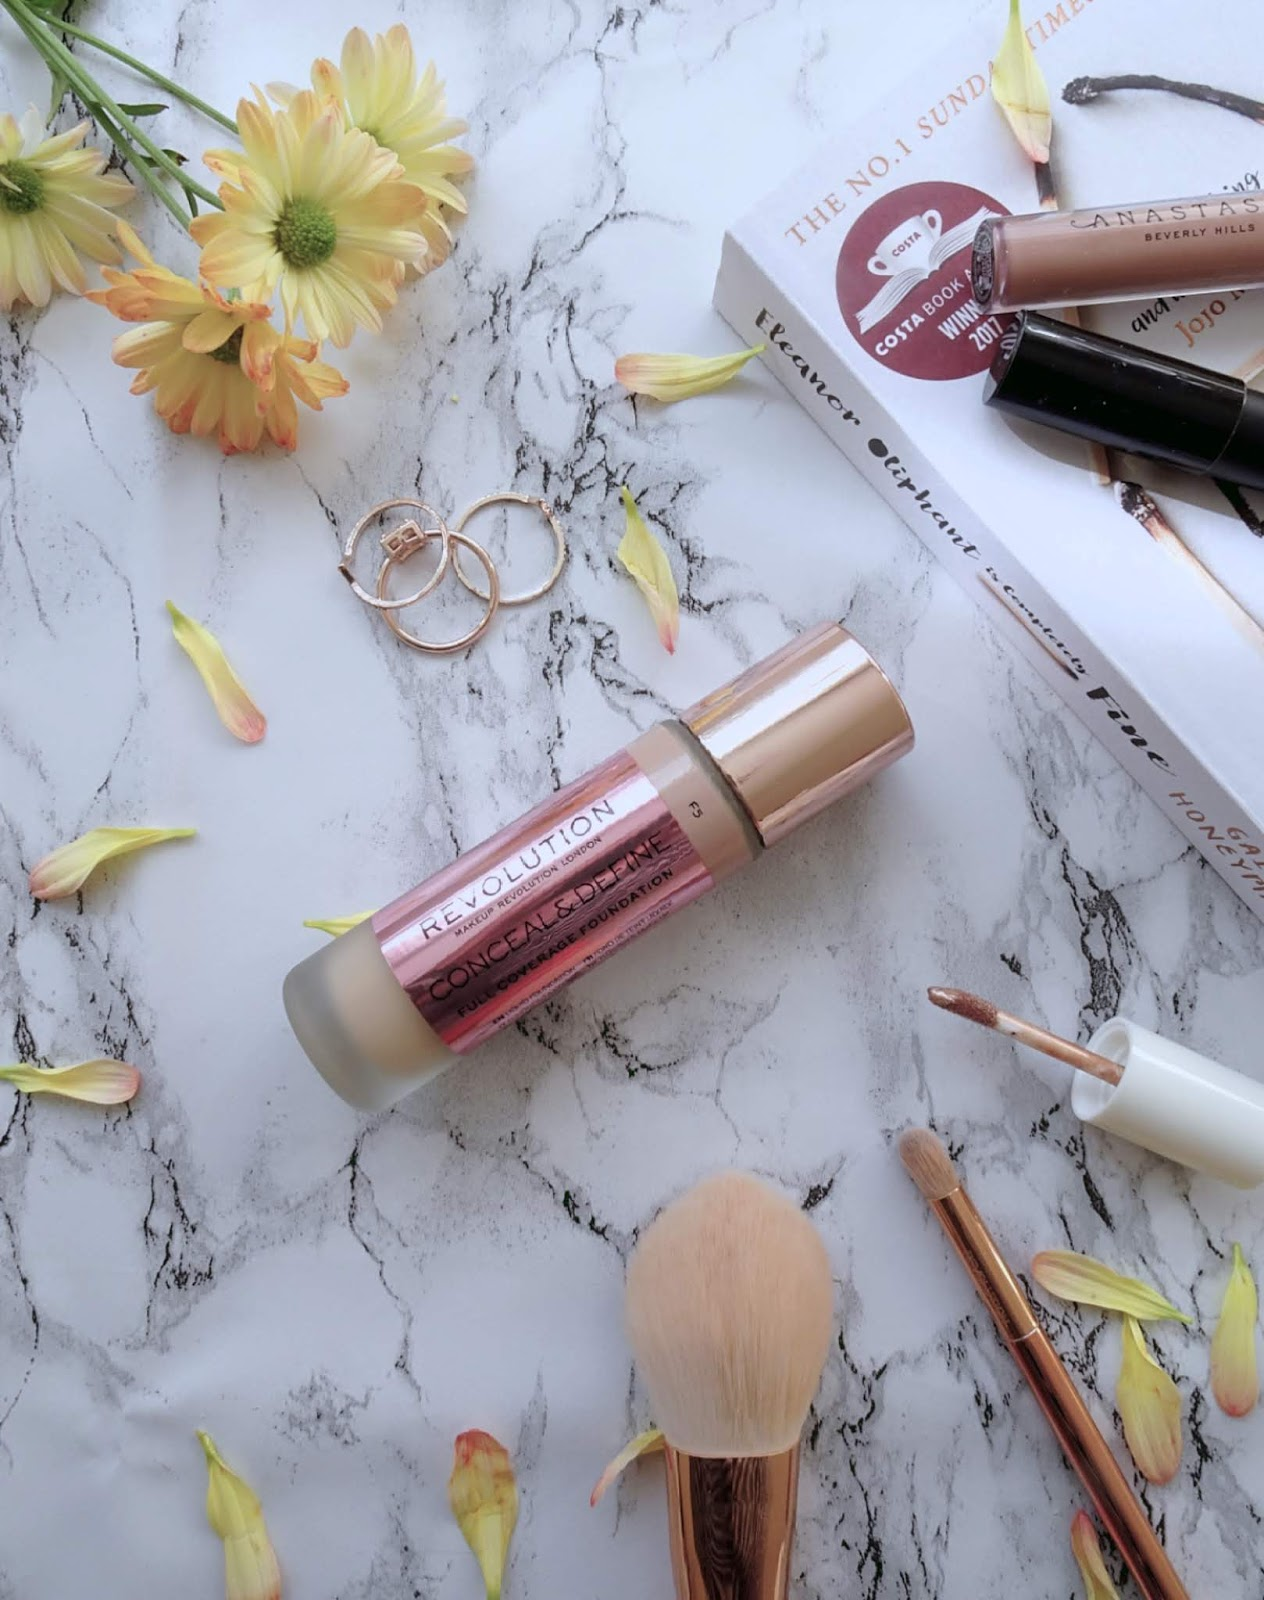 Makeup Revolution is one of my favourite makeup brands on the high street thanks to its sheer volume of products and very good formulas.